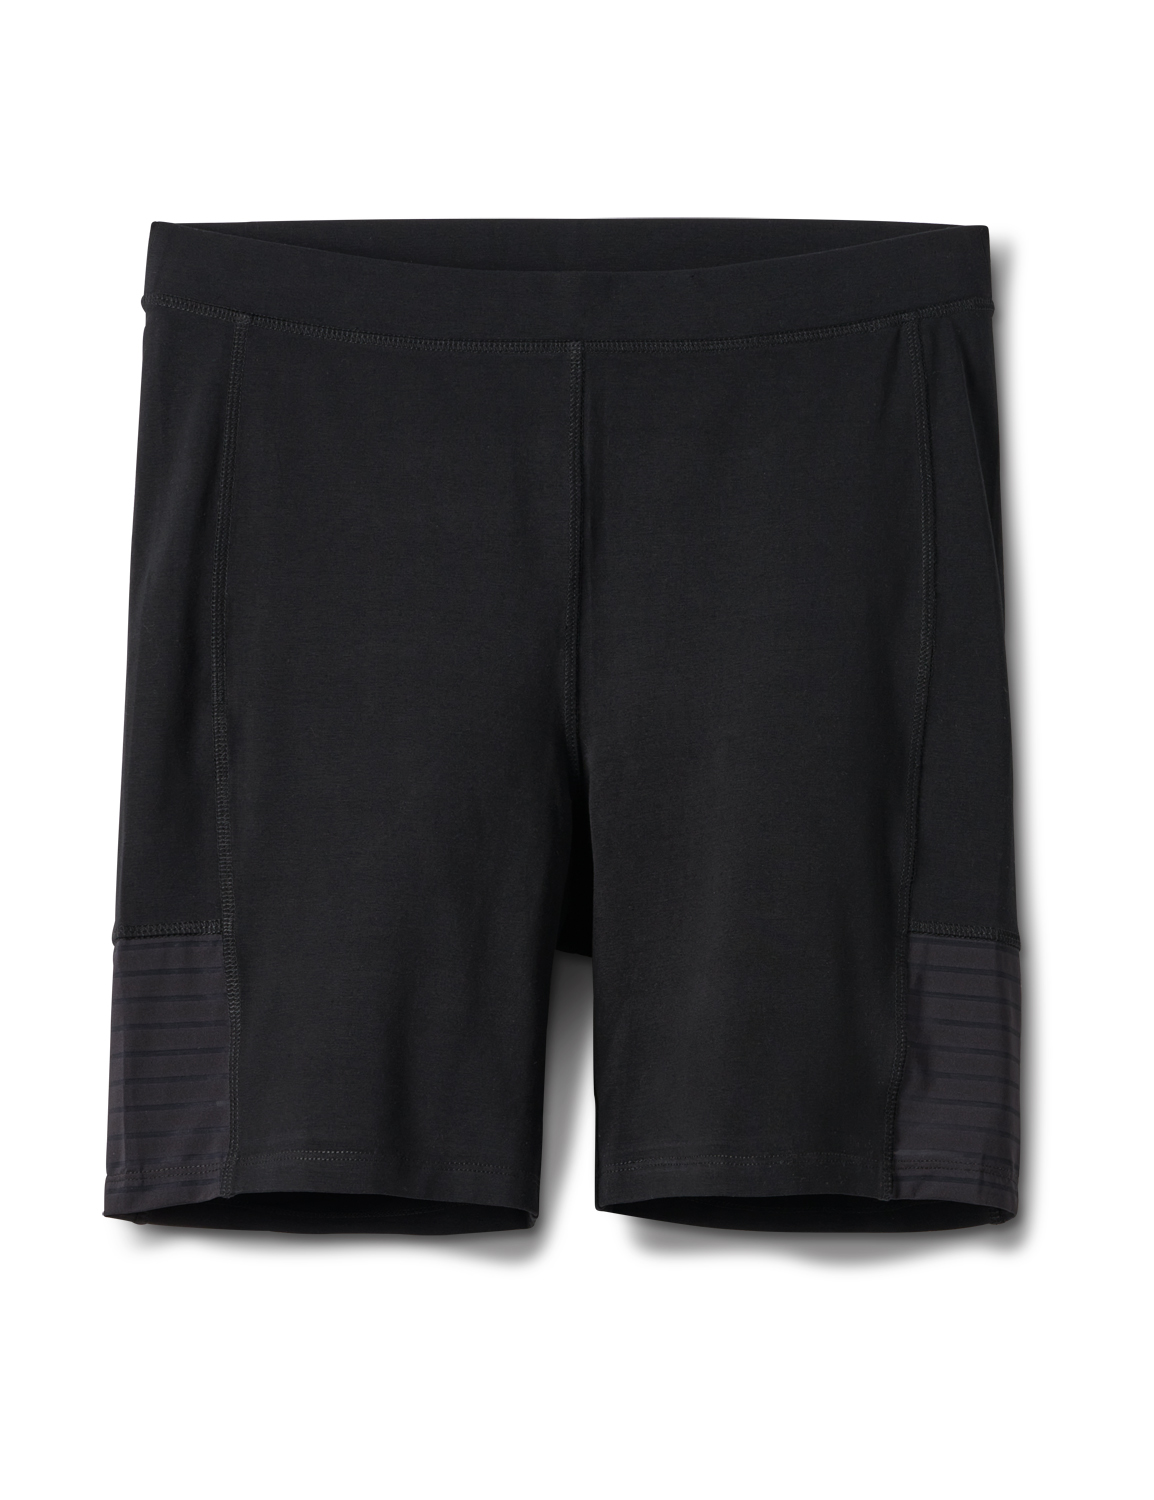 Pima Cotton Bike Short - Plus -Black - Front